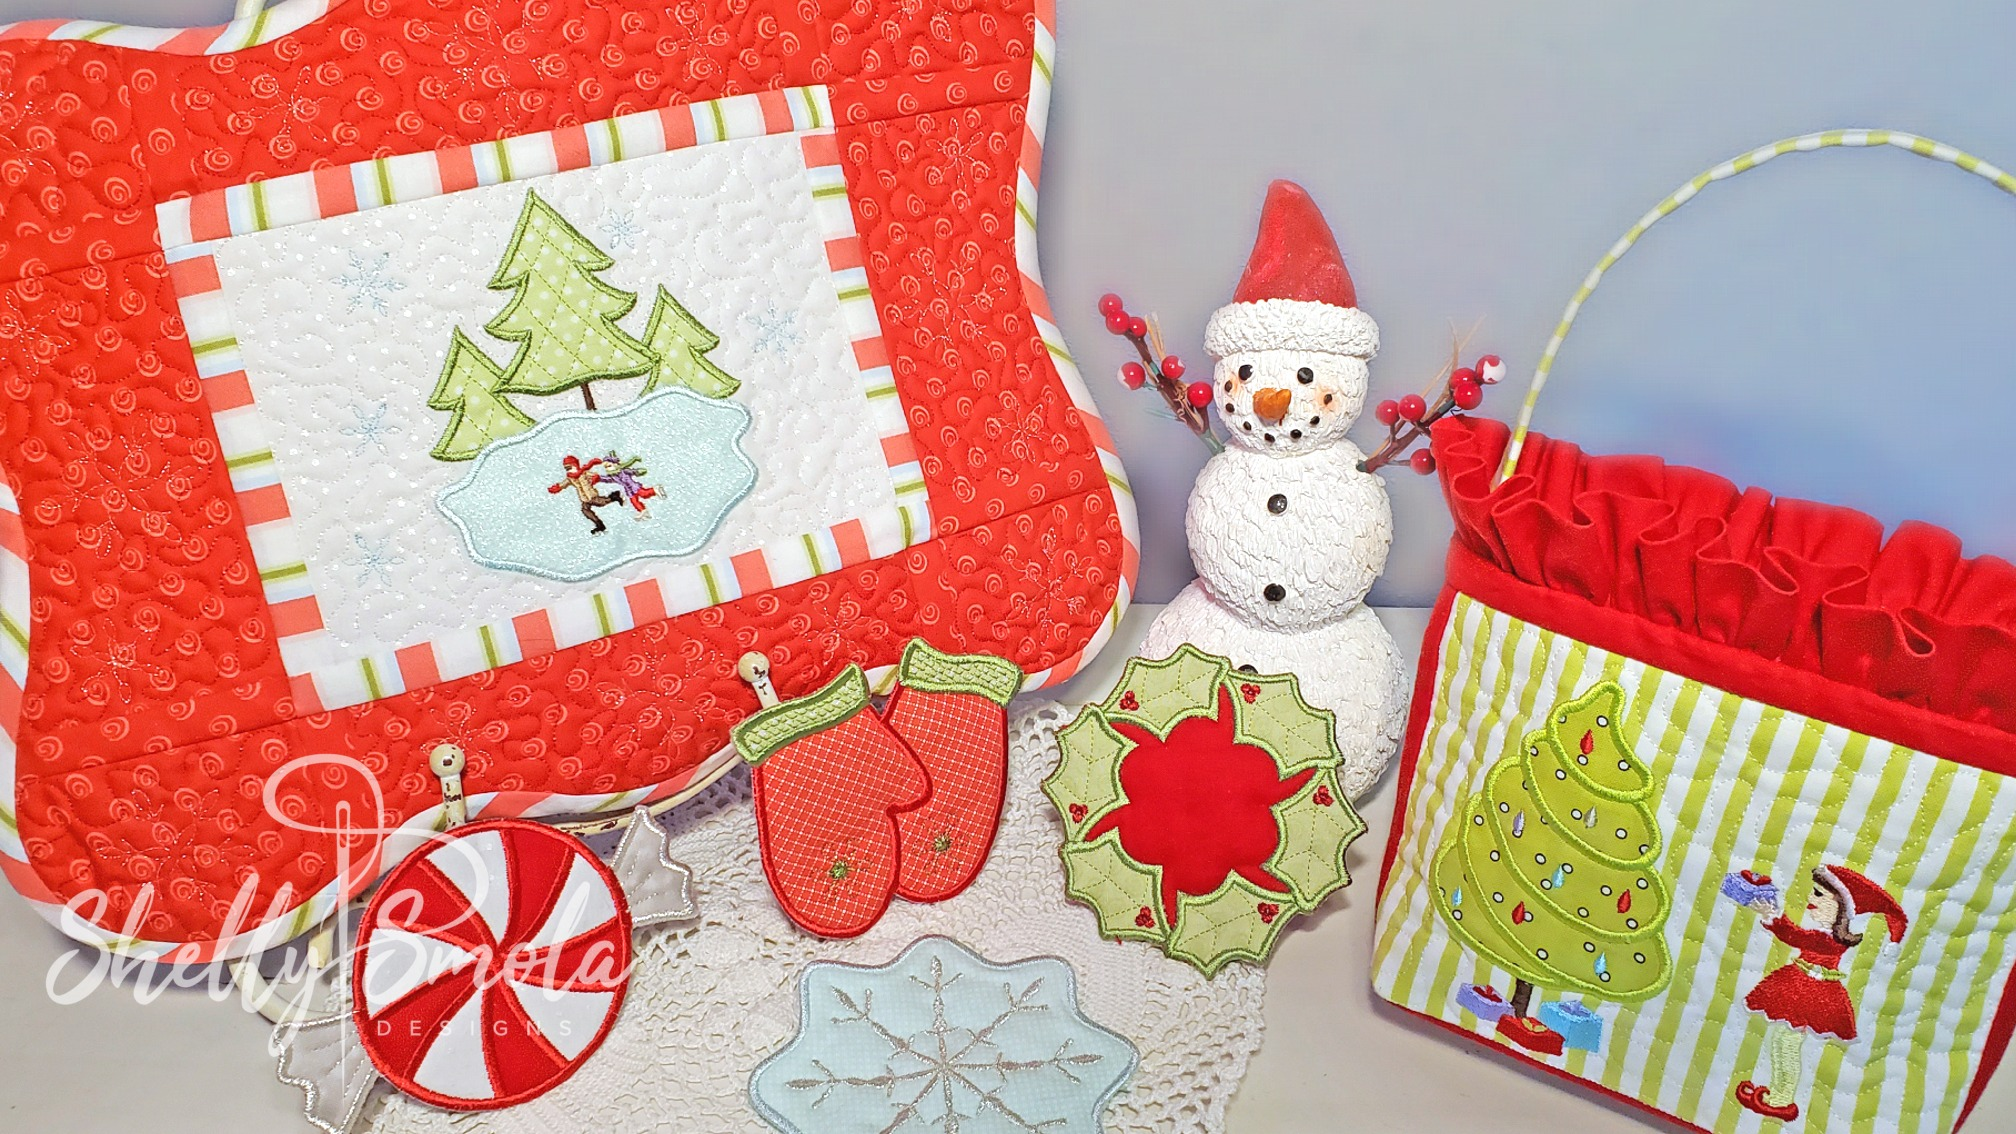 Winter Wonderland Party Set by Shelly Smola